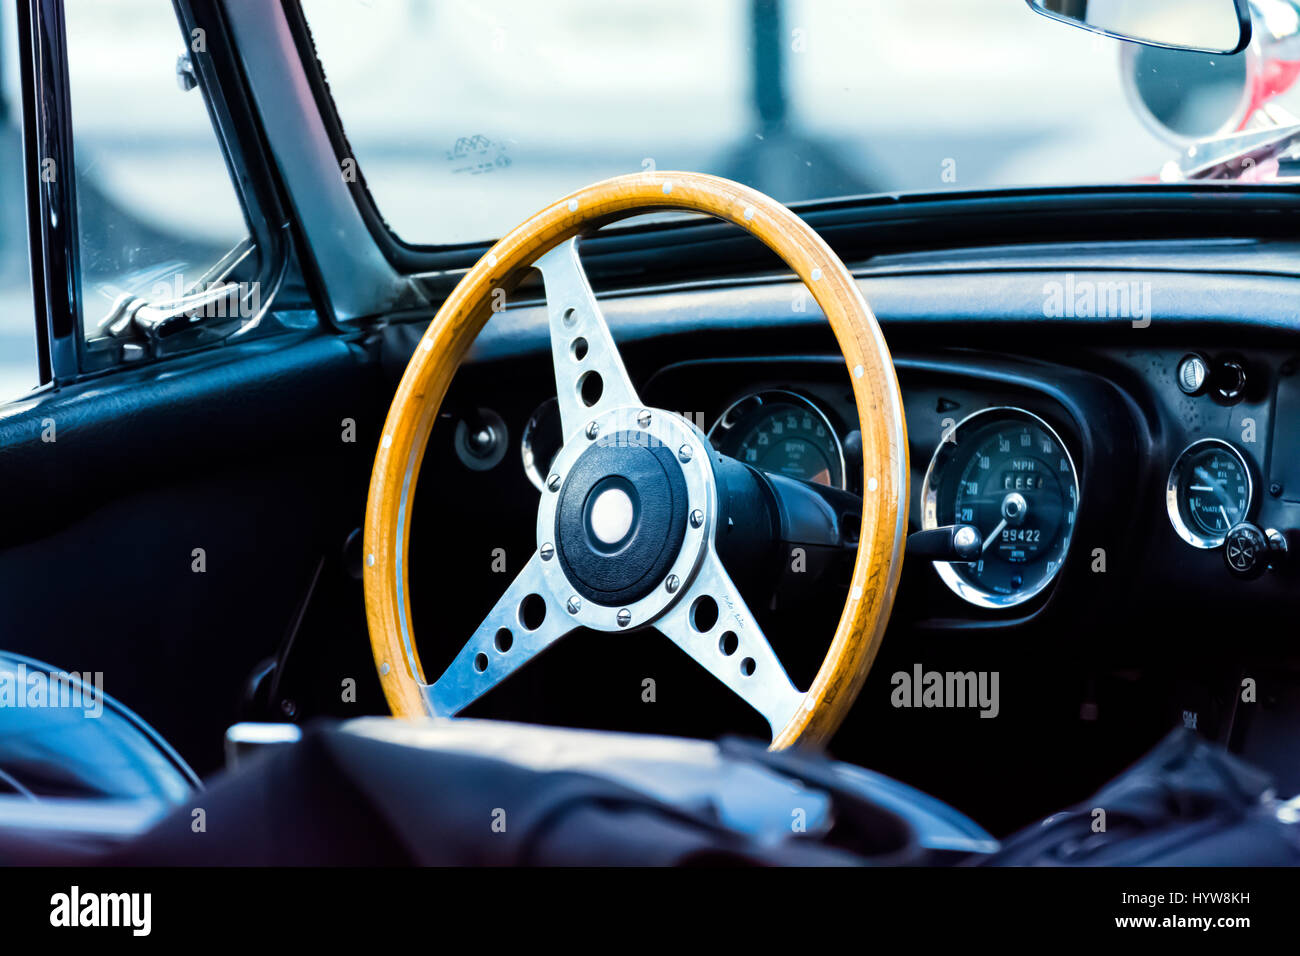 Steering Wheel And Dashboard Of Antique Car Stock Photo